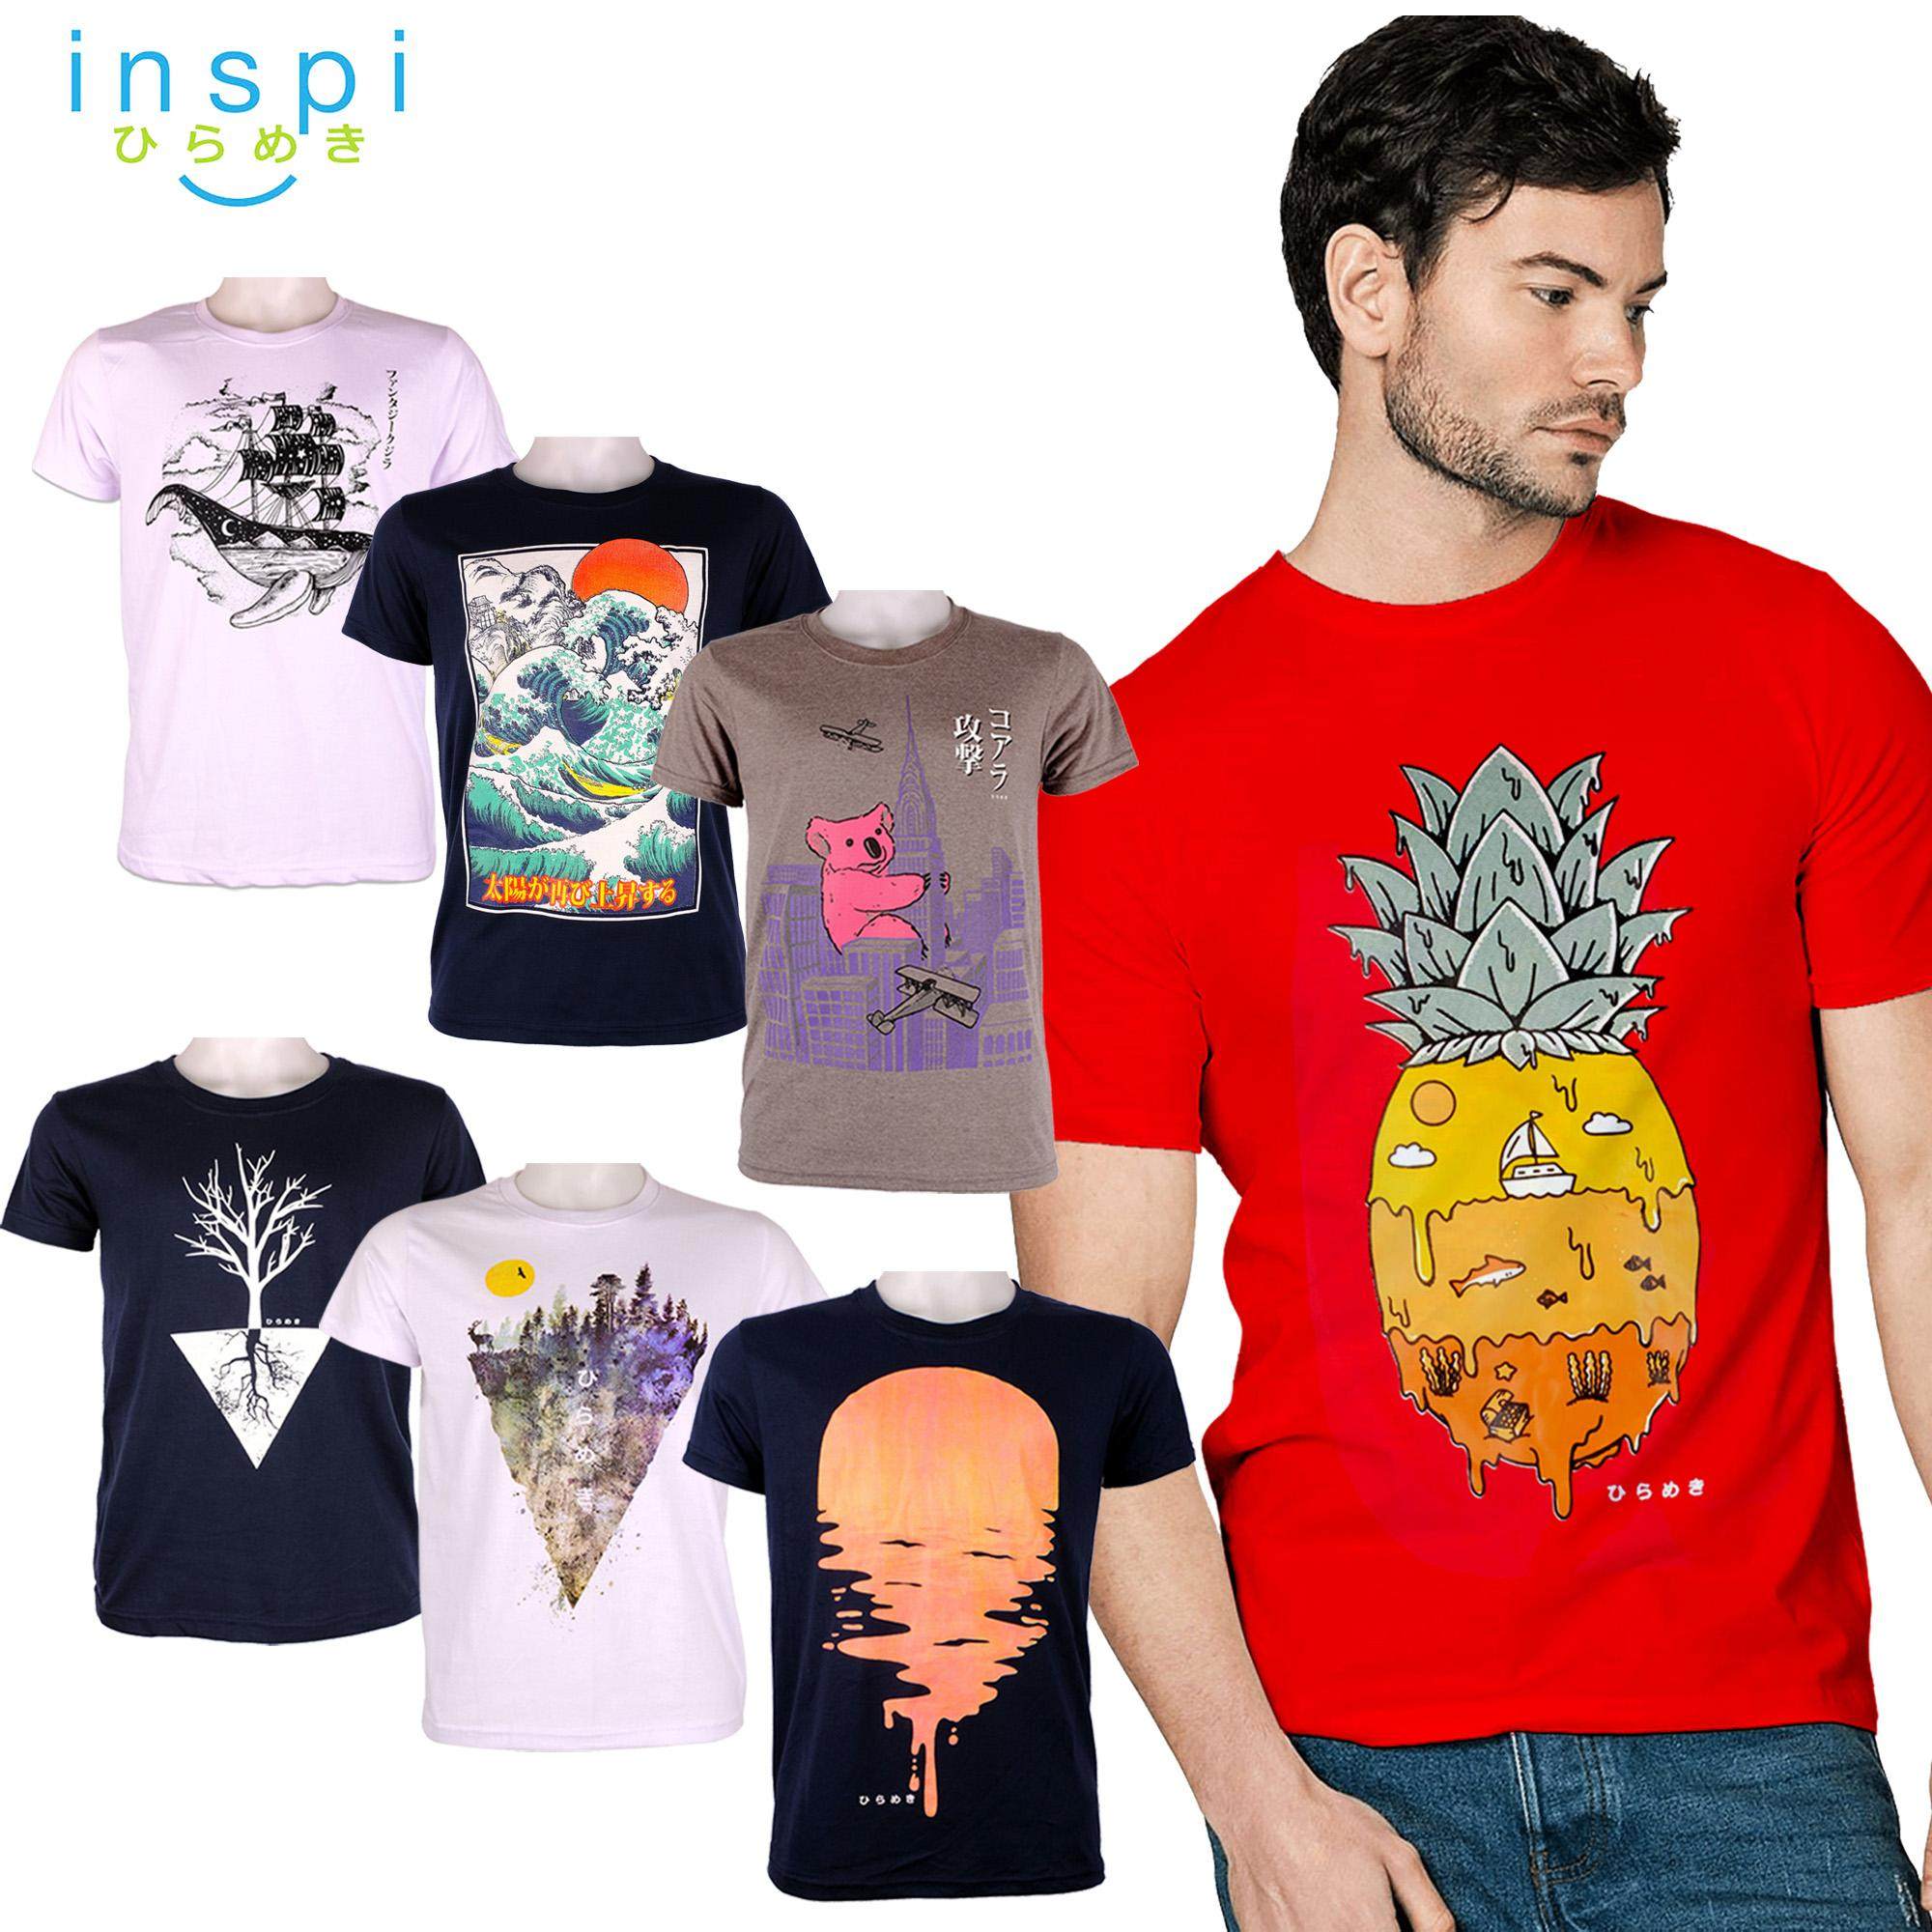 e97cdb93da68 INSPI Tees Nature Collection tshirt printed graphic tee Mens t shirt shirts  for men tshirts sale